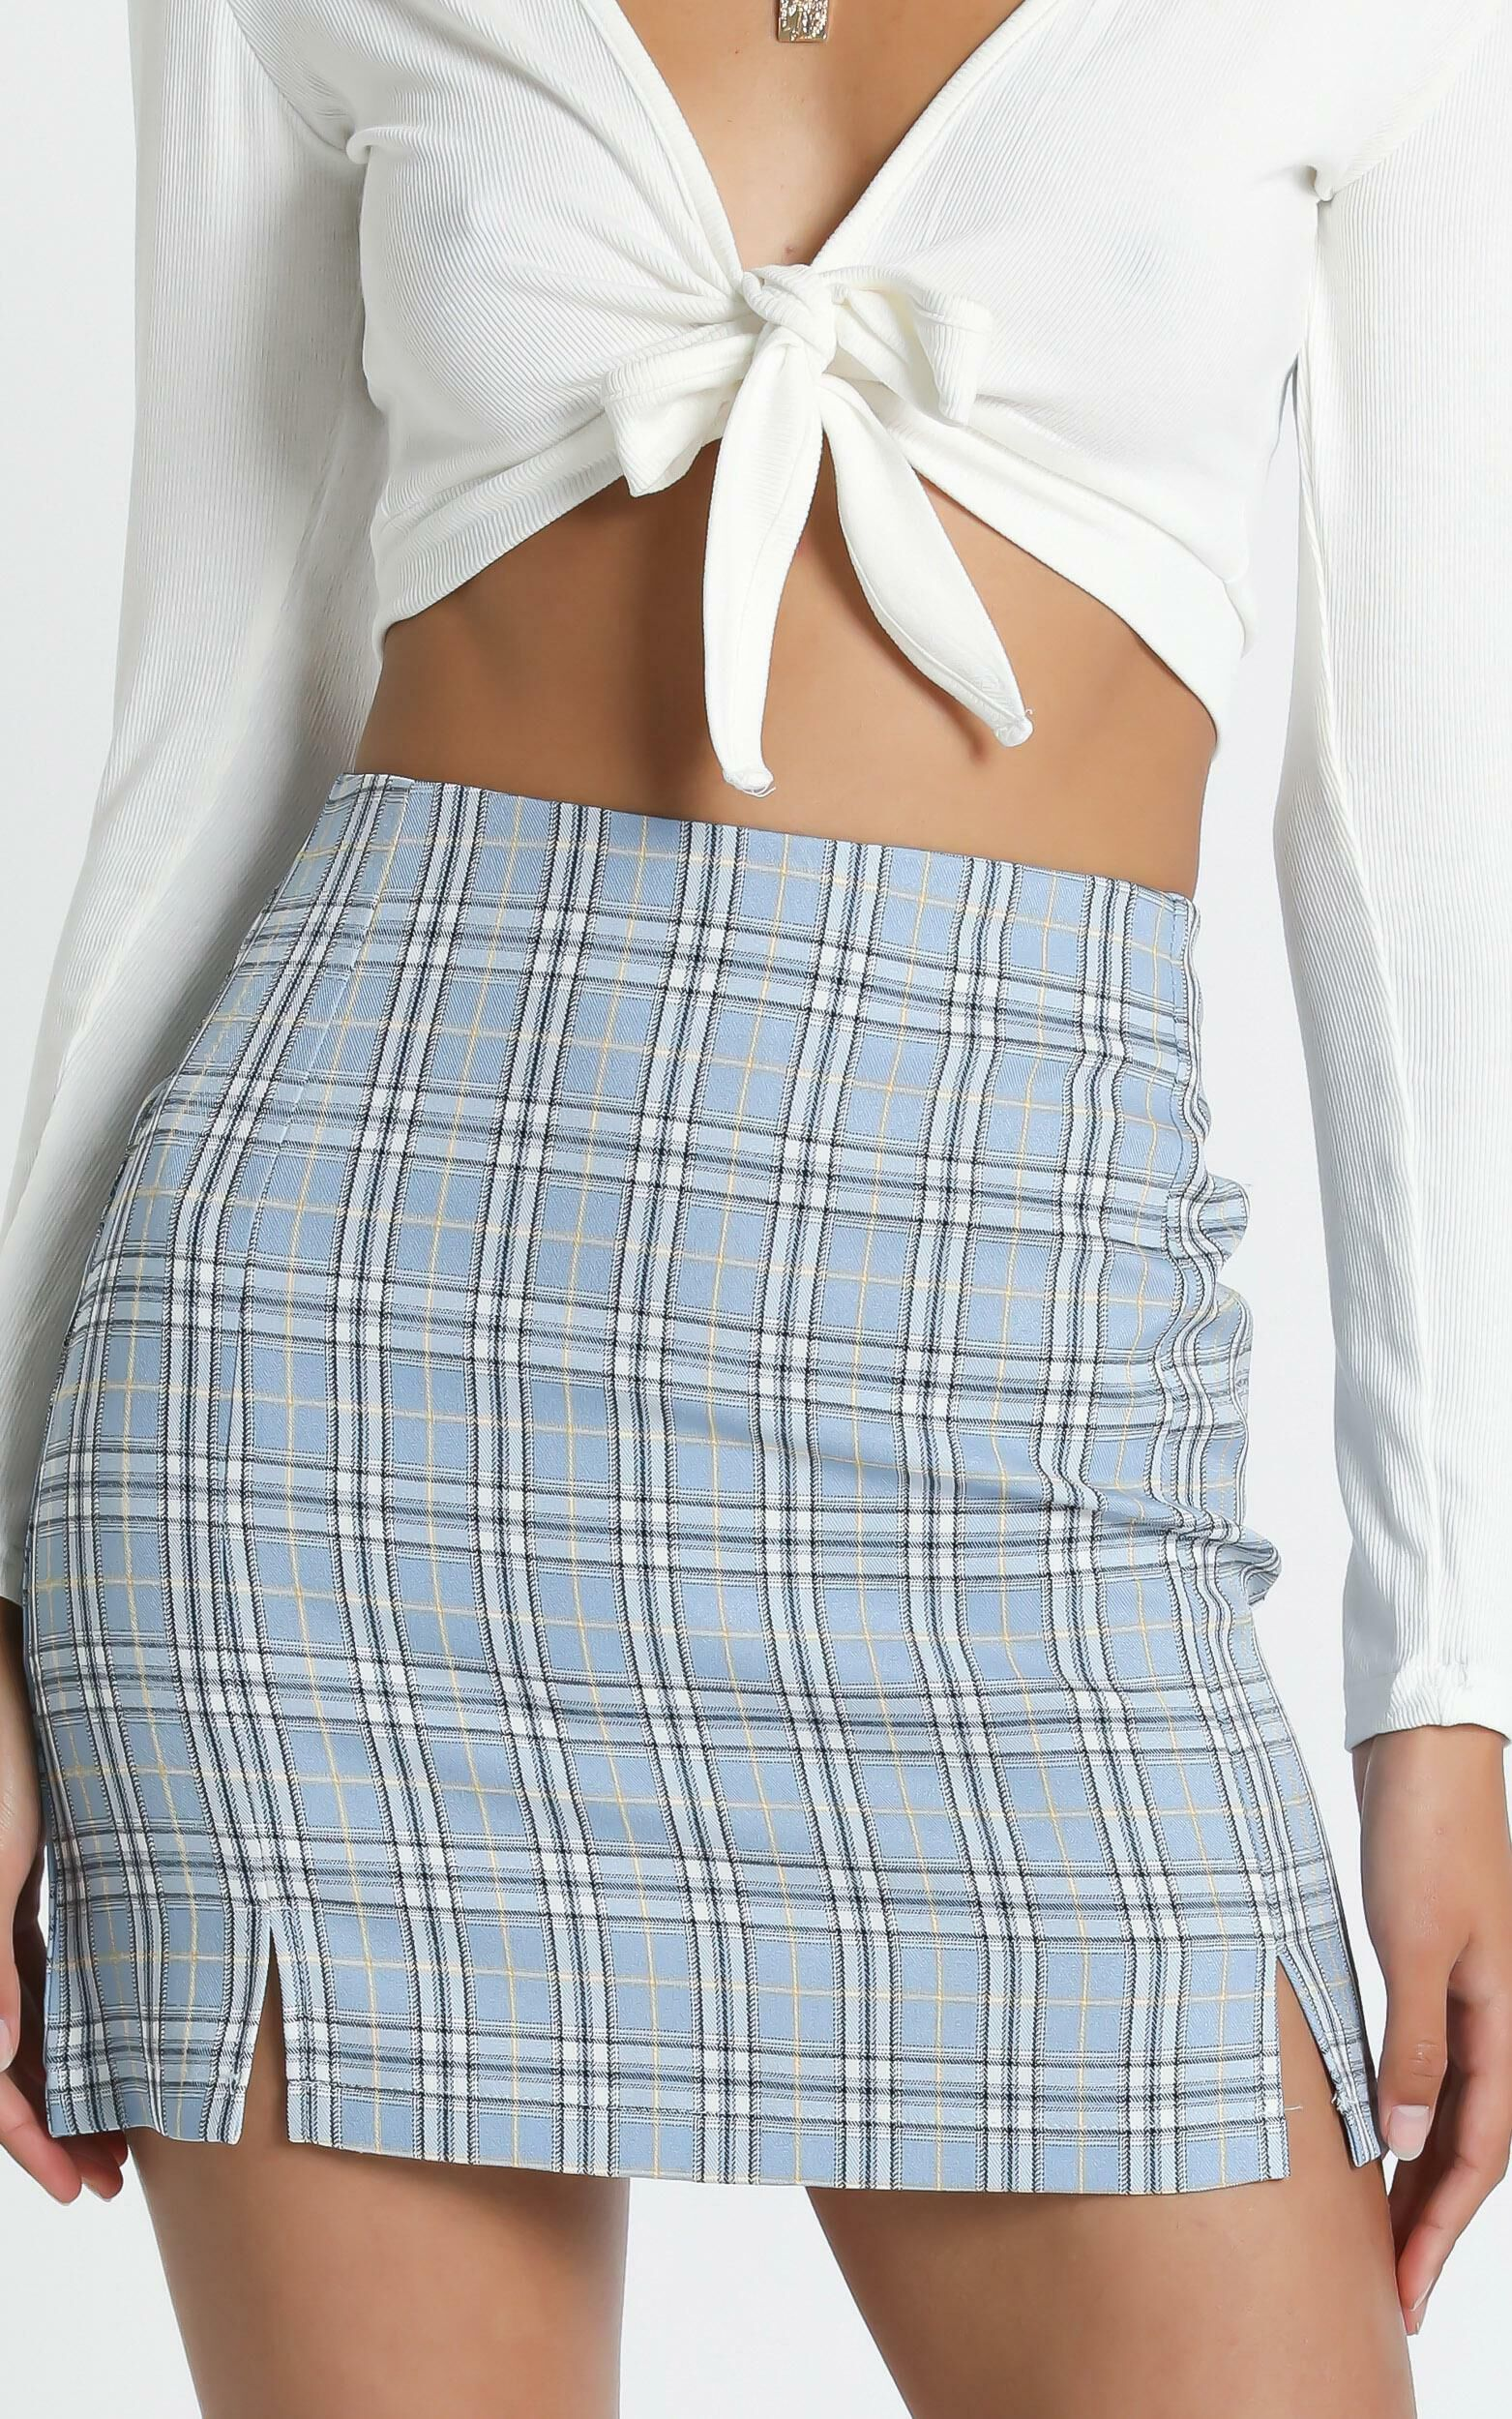 Mae Skirt in Blue check - 8 (S), Blue, super-hi-res image number null